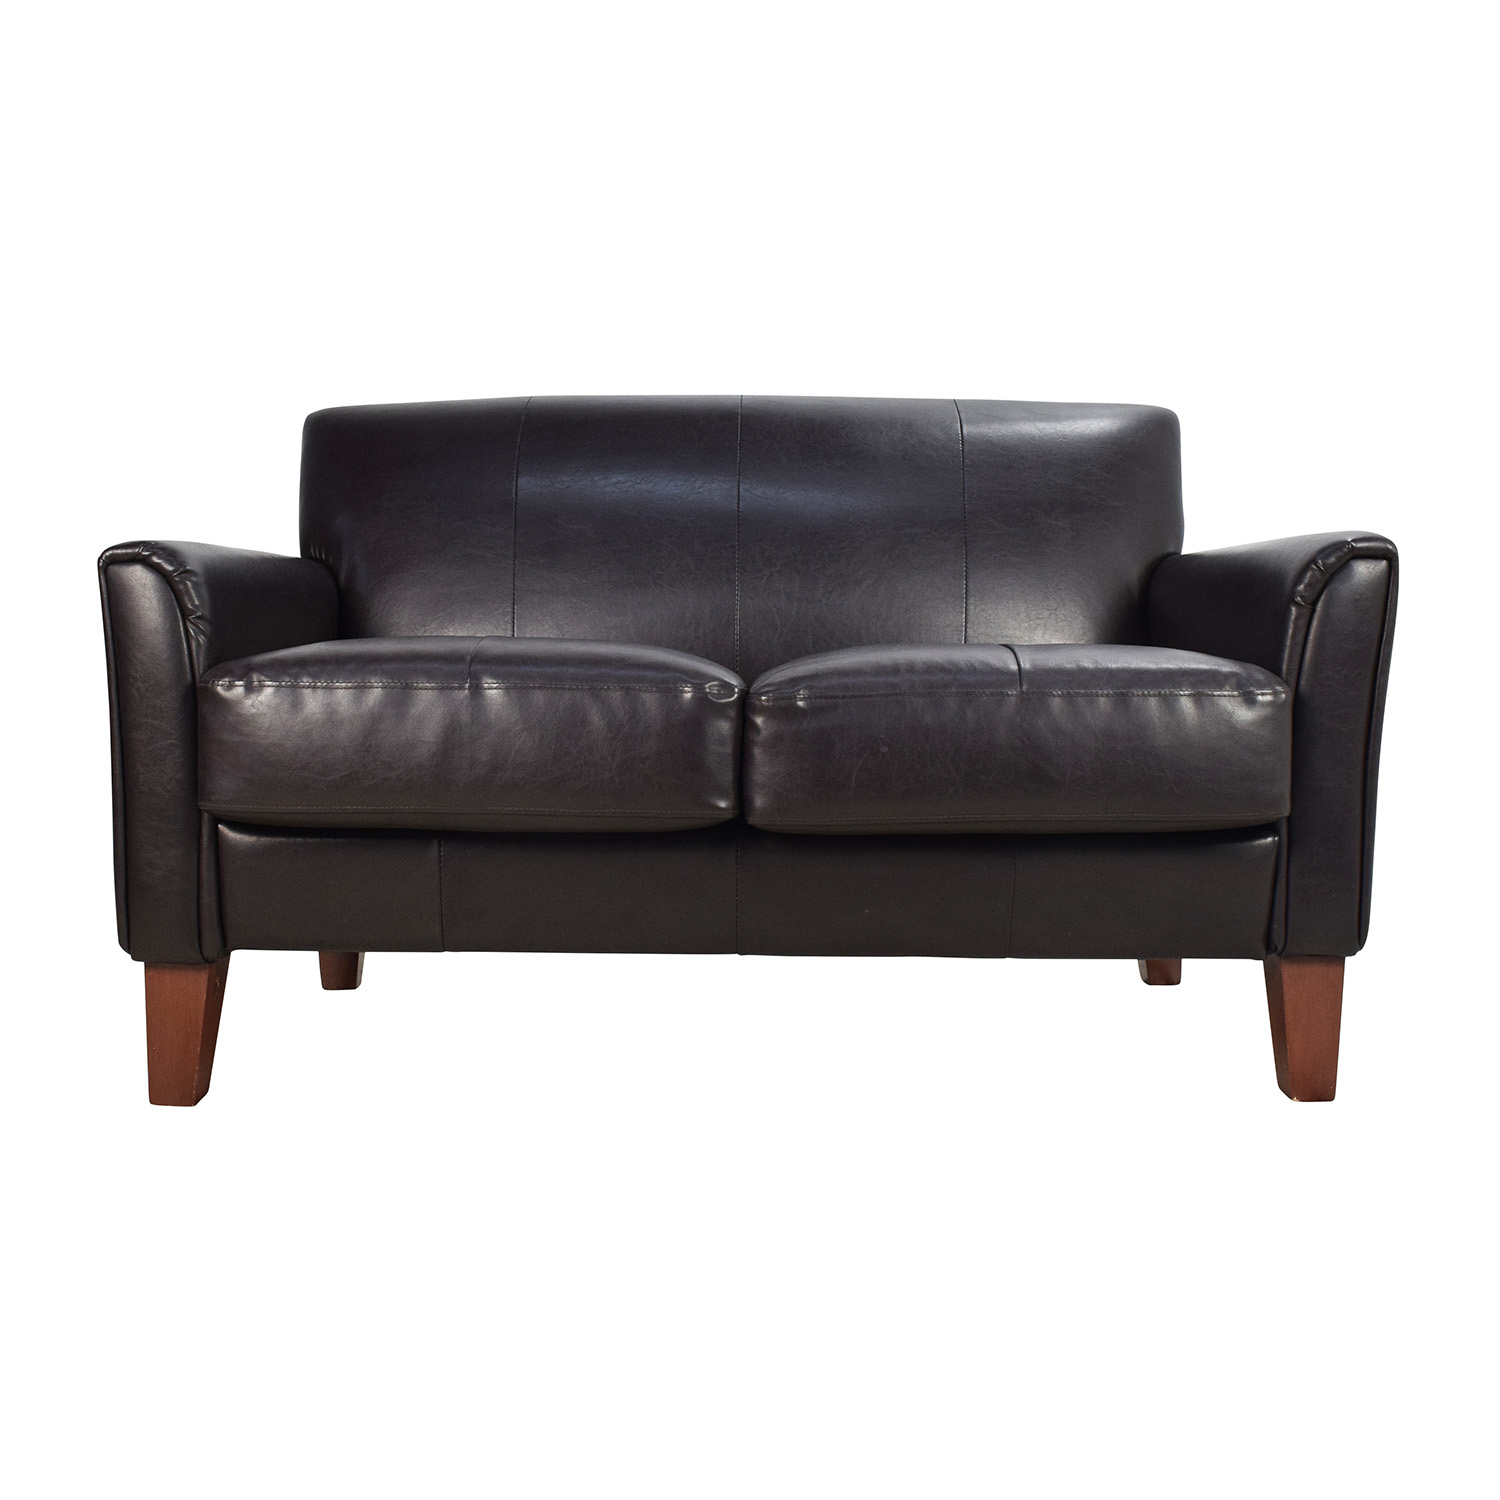 Order sofas online custom slipcovers and couch cover for for Used furniture online